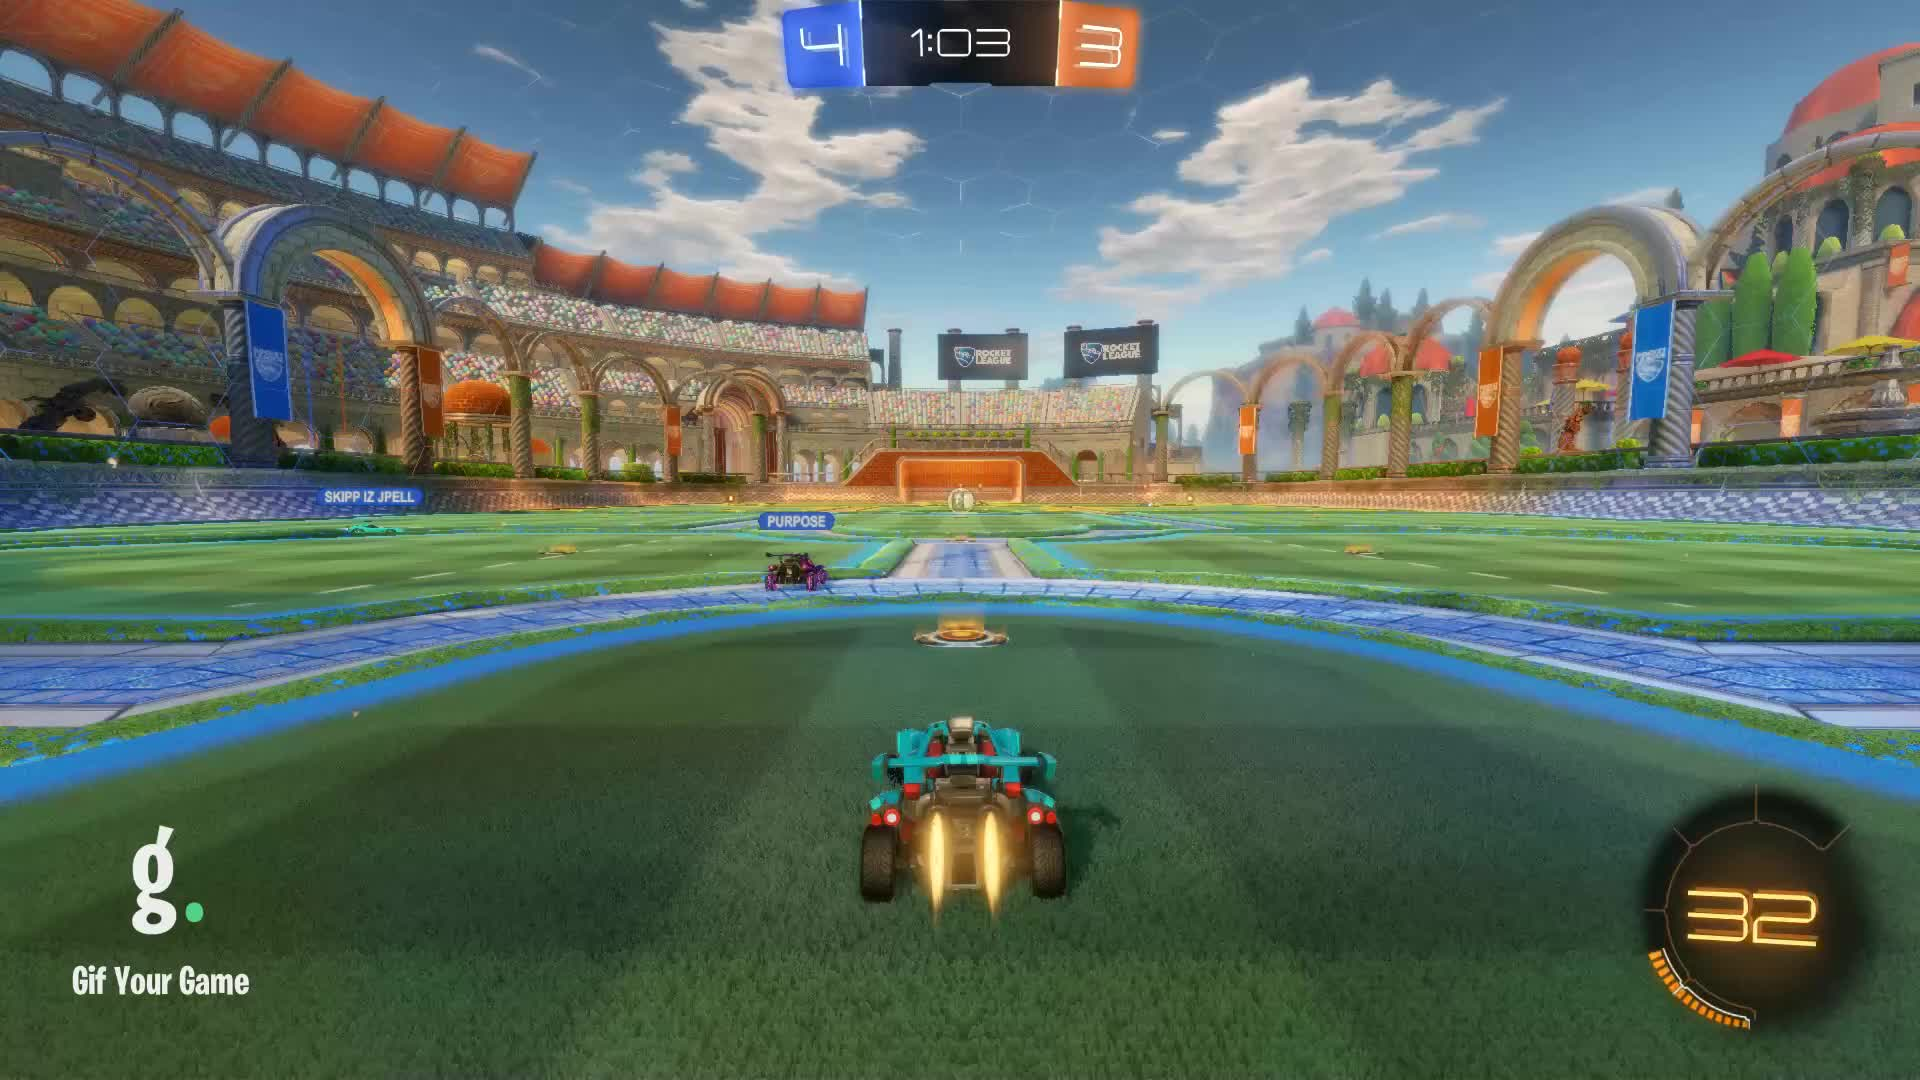 Gif Your Game, GifYourGame, Goal, Rocket League, RocketLeague, luckyman268, Goal 8: luckyman268 GIFs